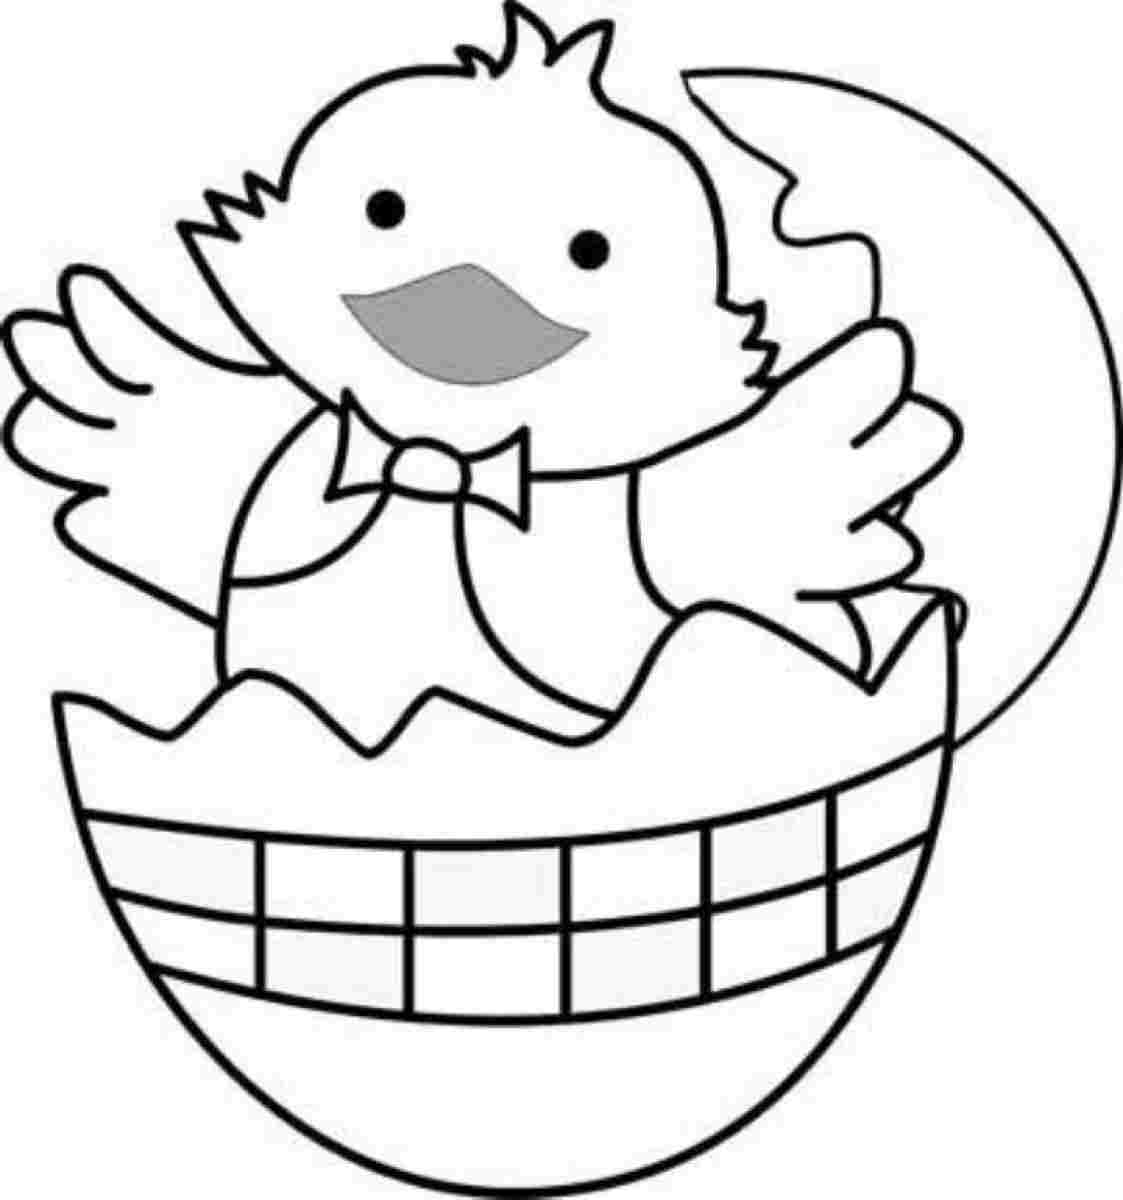 coloring pages of baby chicks baby chick coloring pages coloring pages for kids chicks pages of baby coloring